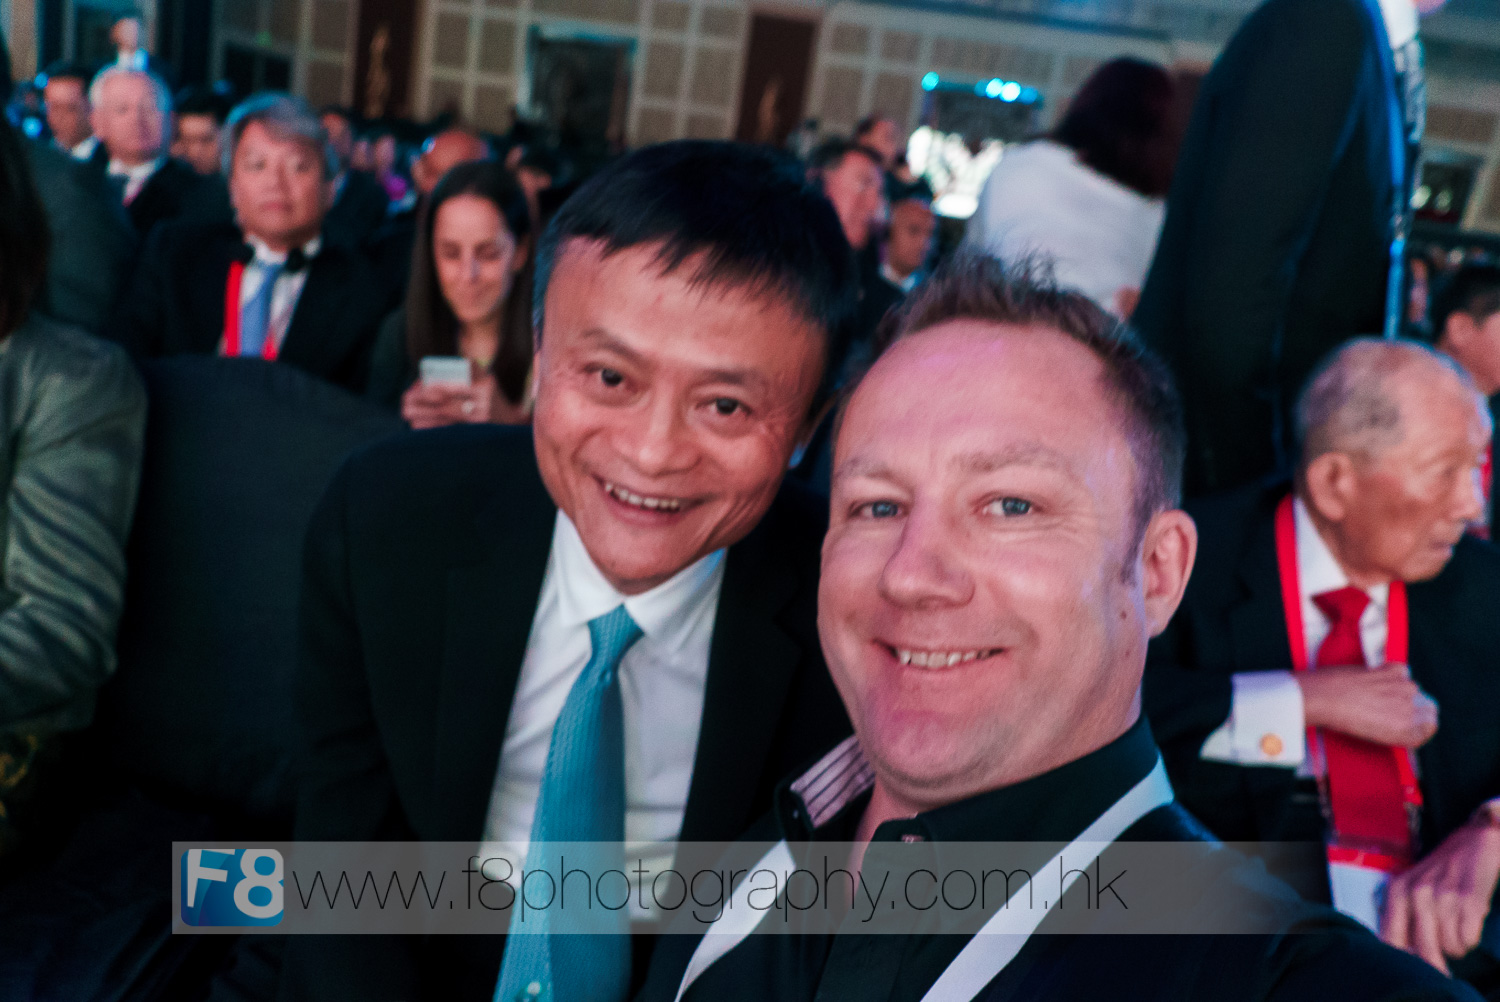 shameless selfie of myself with jack ma on the front row of apec 2015....out of focus, but still worth it...lol.